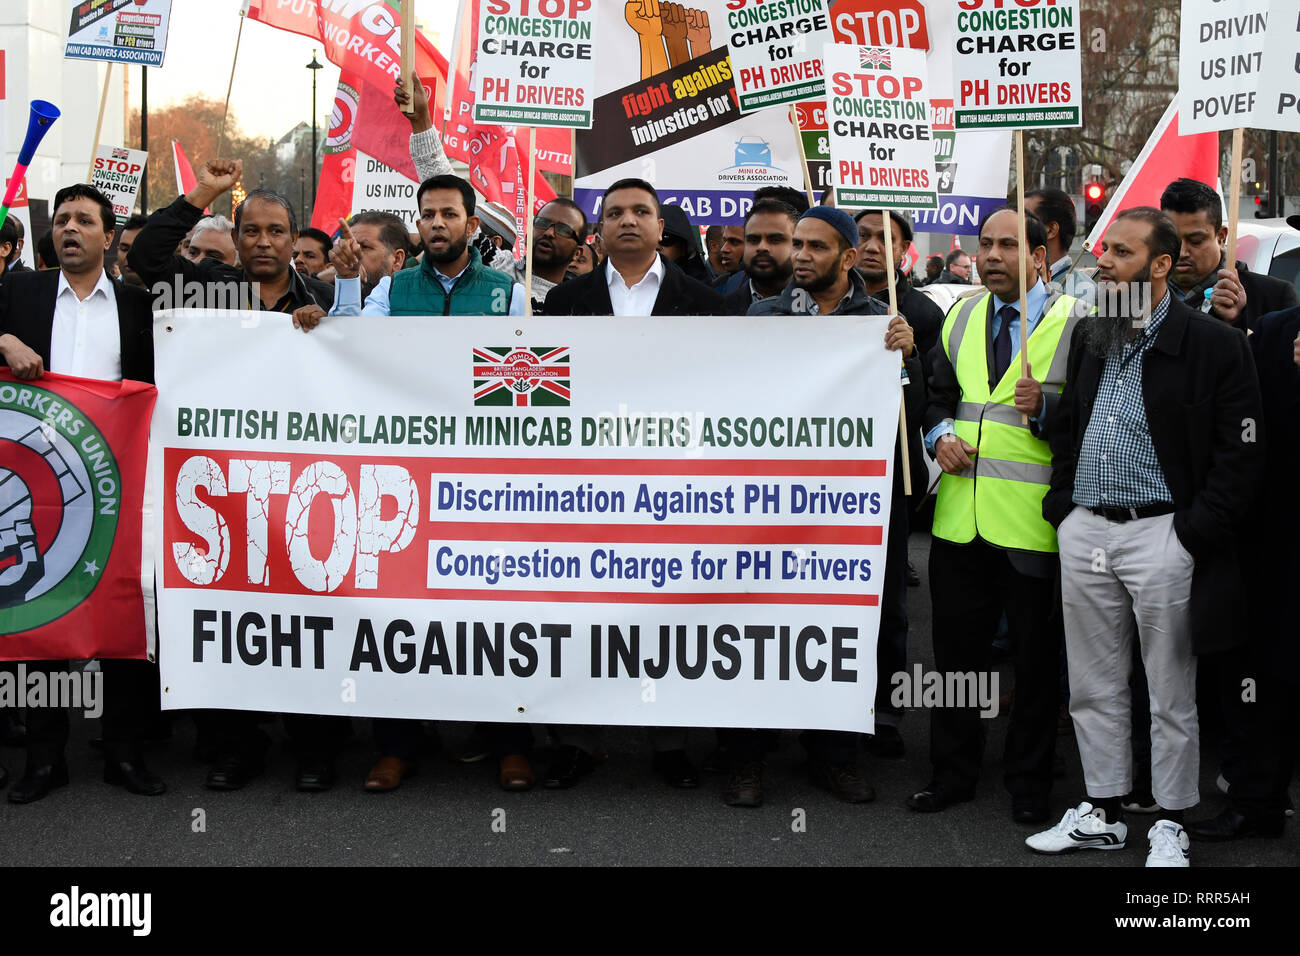 Minicab drivers seen holding a banner during the protest. Minicab drivers blocked Parliament Square in protest over changes to the congestion charge. Drivers are against congestion charges introduced by Mayor Sadiq Khan. TFL said the measure is necessary to reduce London's air pollution. - Stock Image